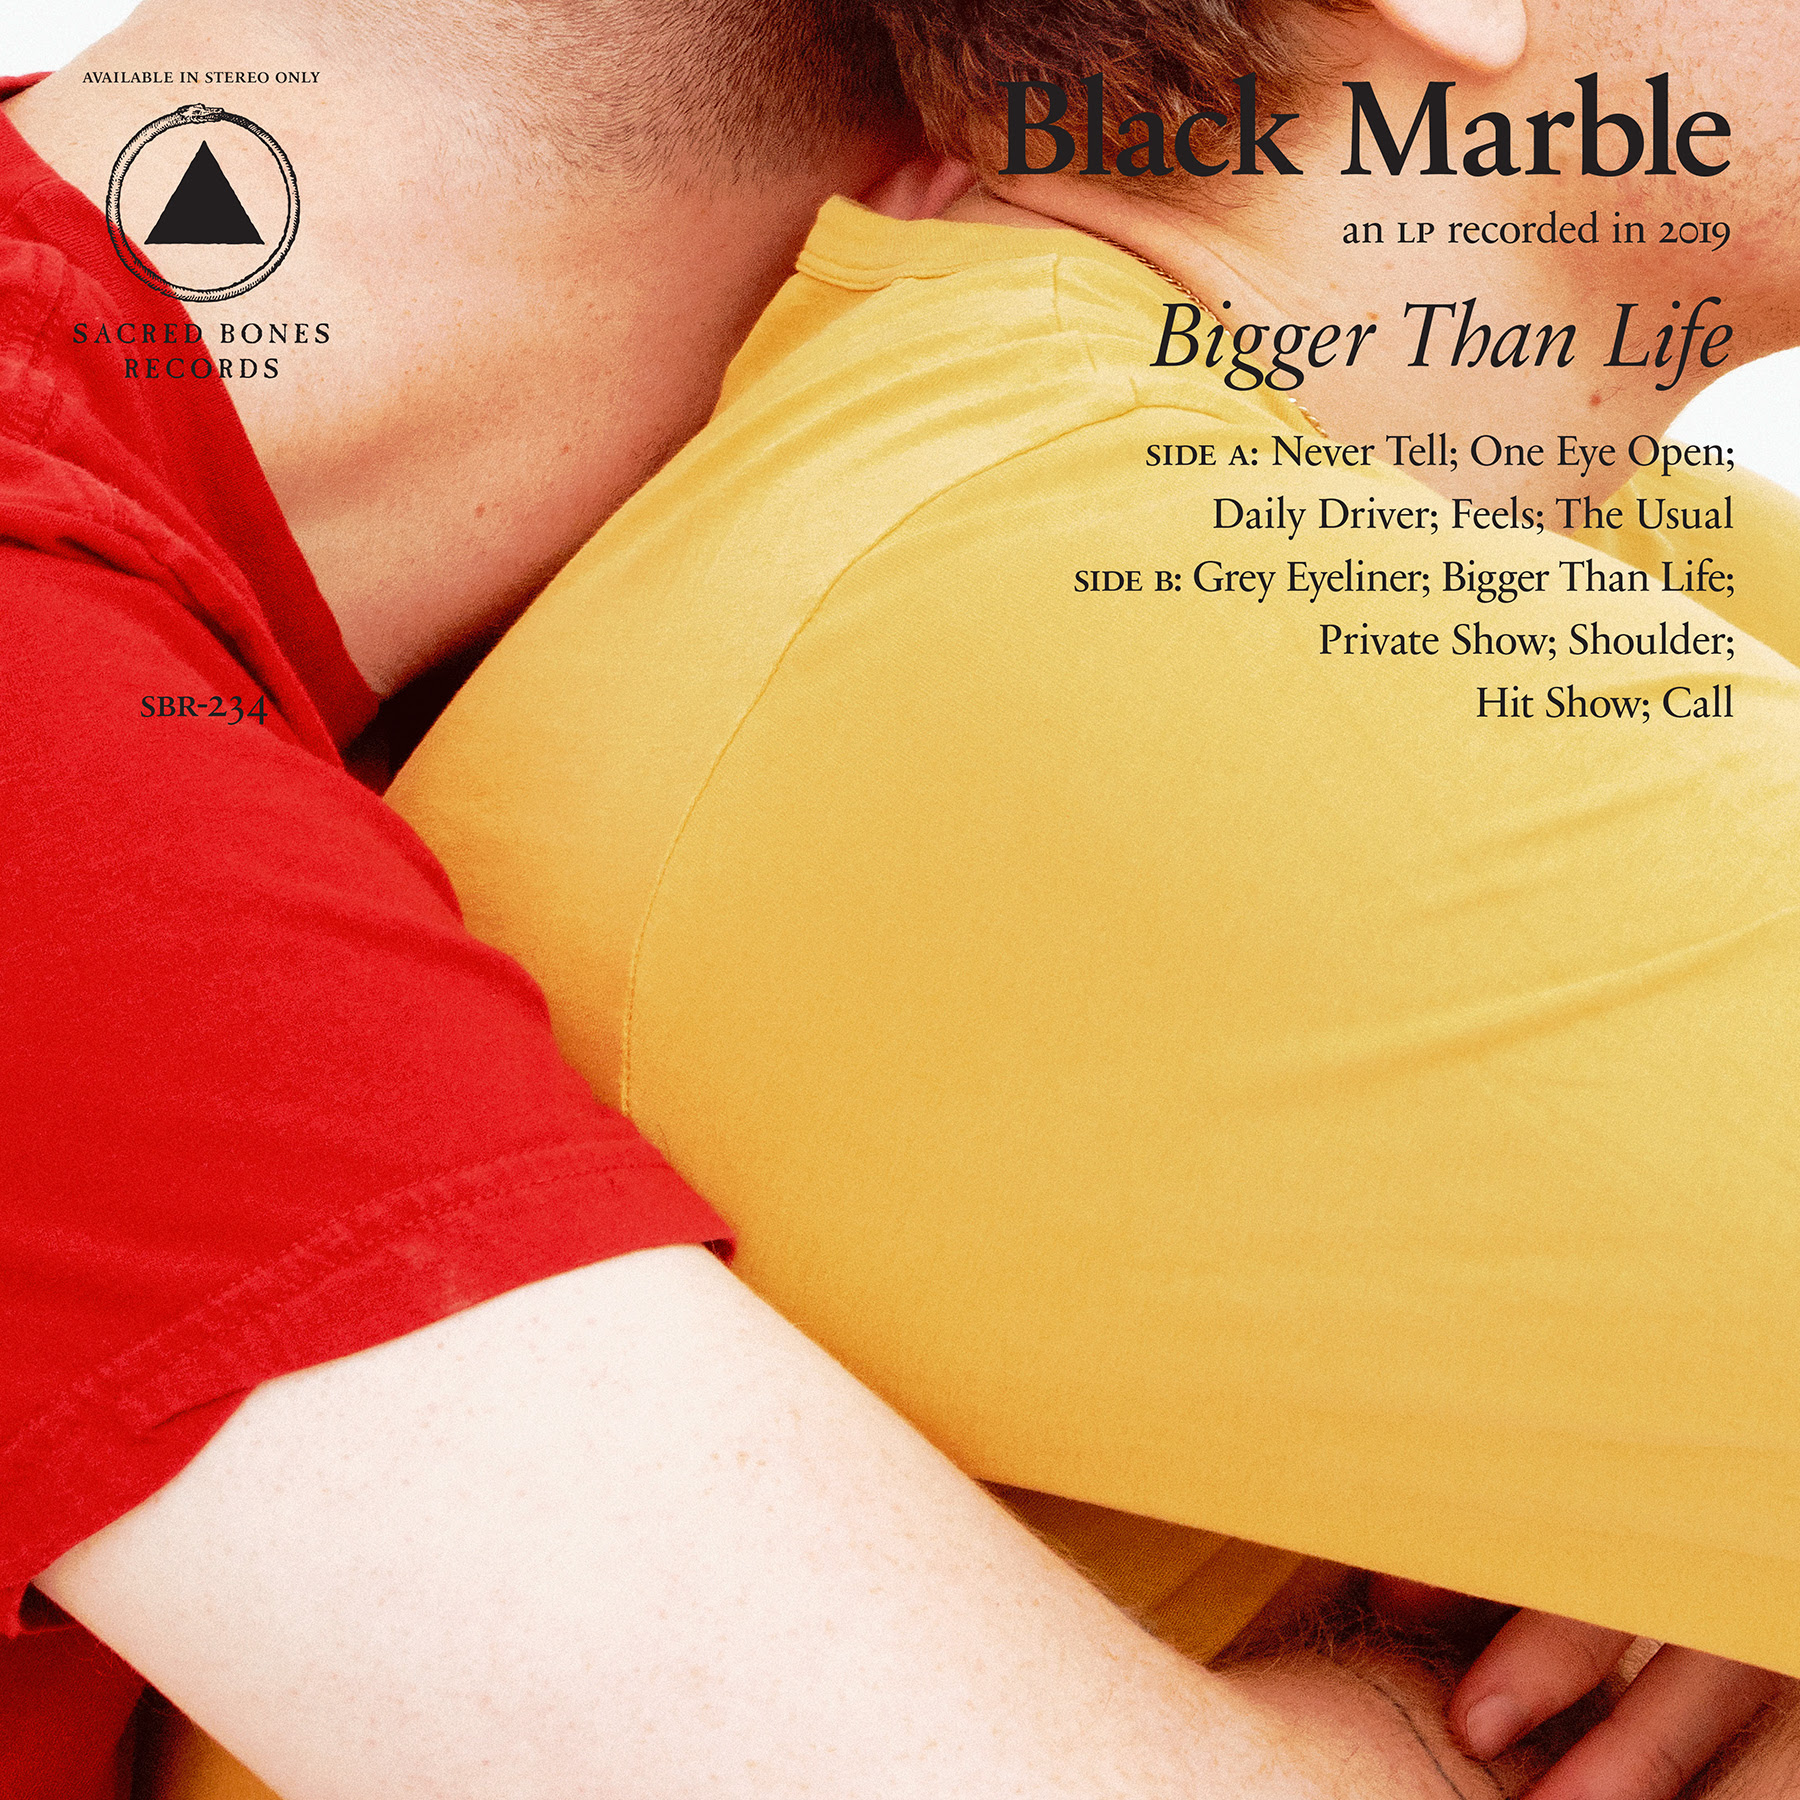 Black Marble has announced his new LP Bigger Than Life will be released via Sacred Bones (his debut for the label) on October 25th